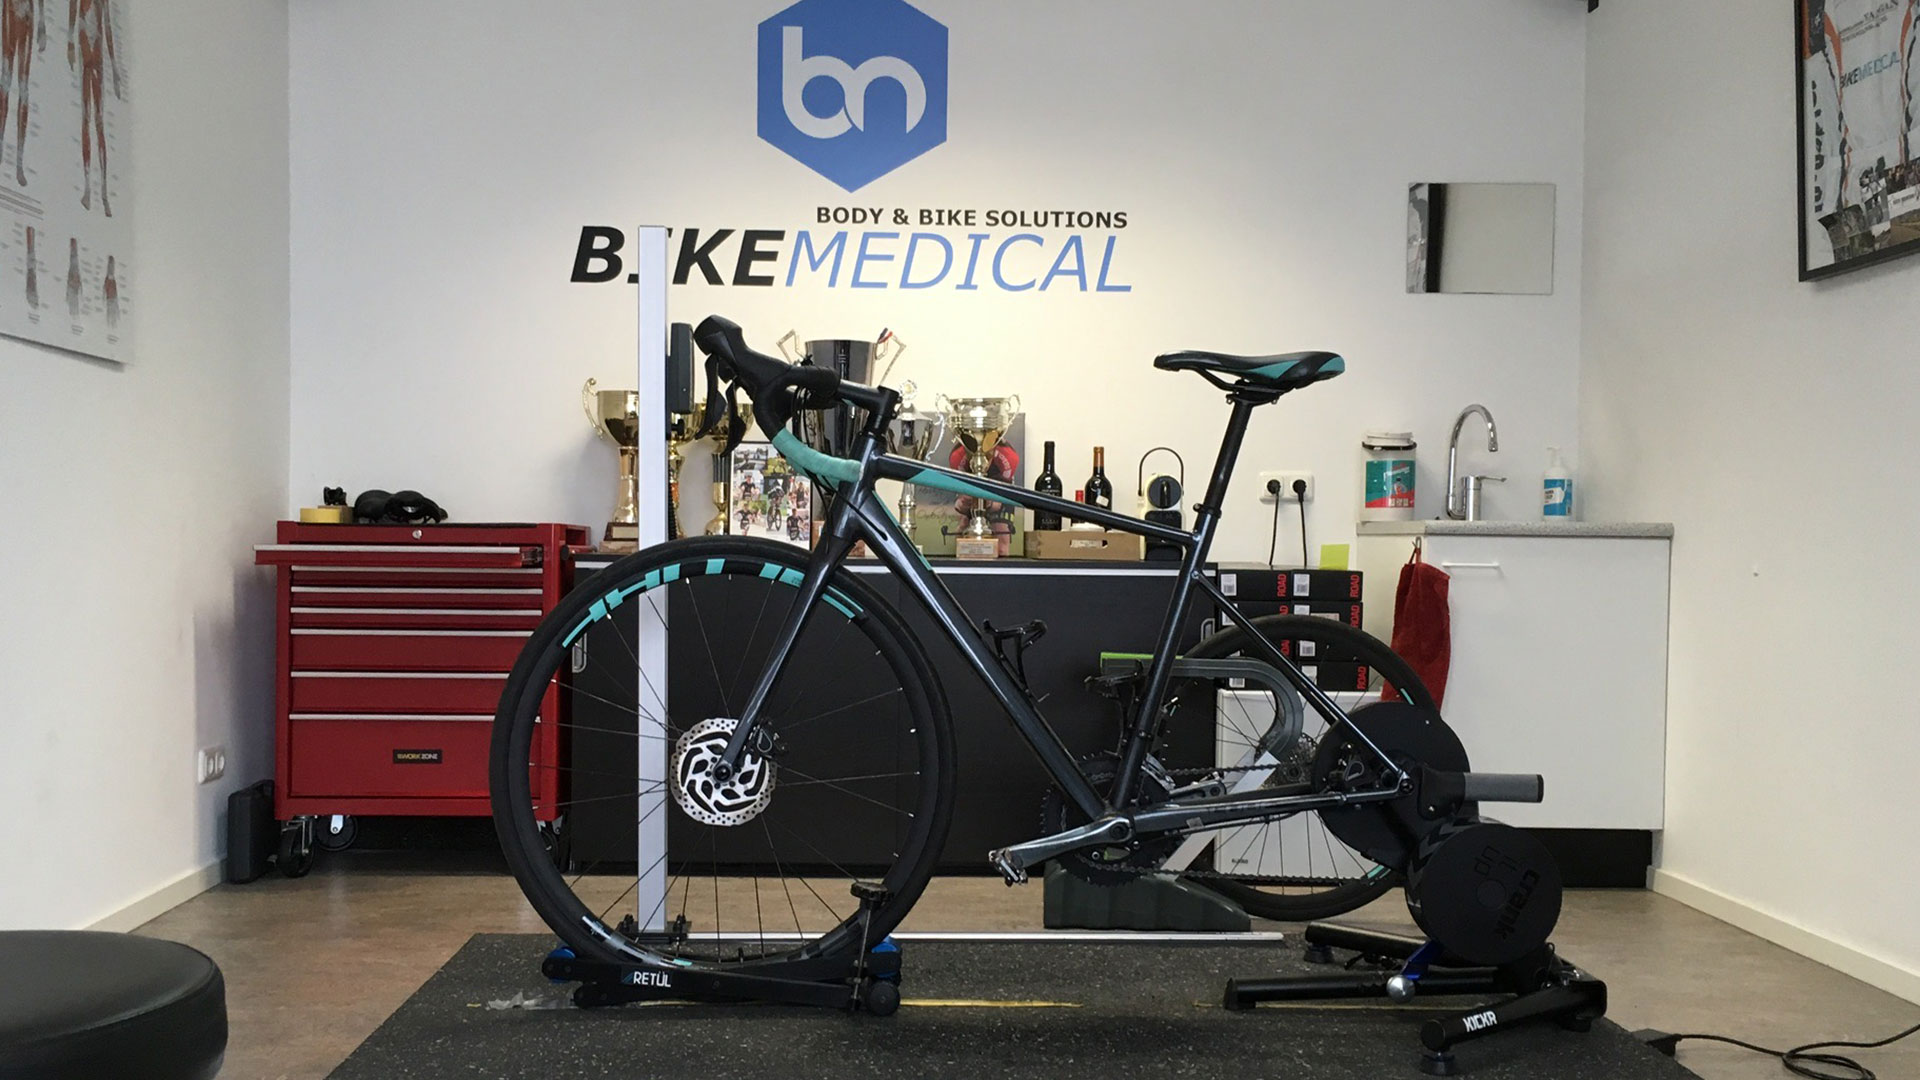 Bikefitting review: Bikemedical Geleen